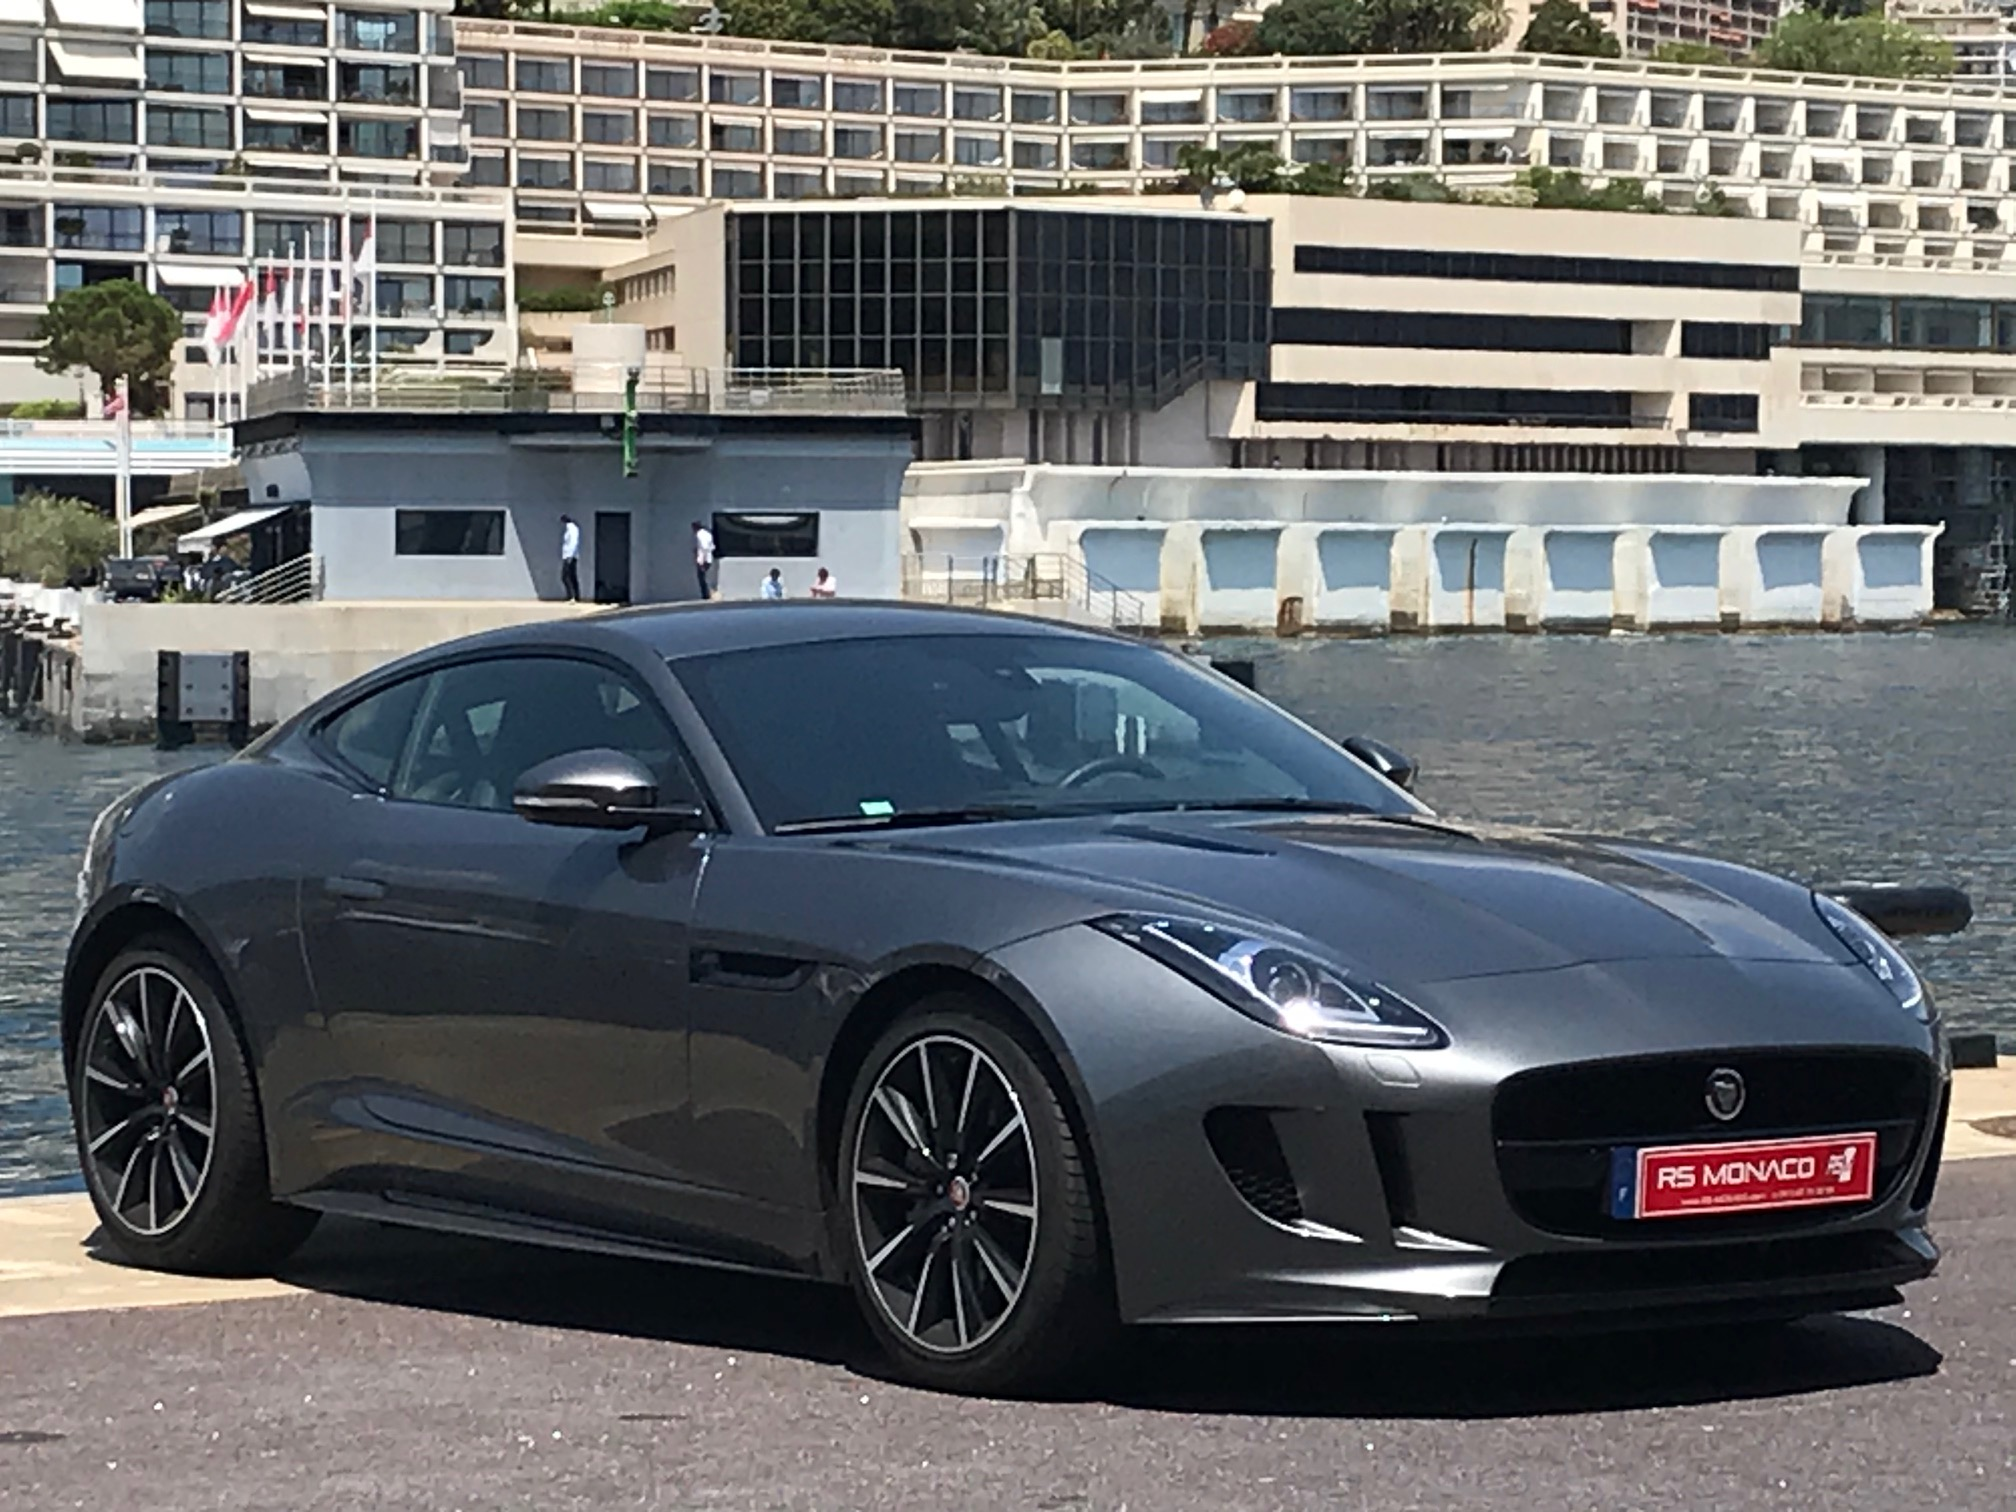 JAGUAR – F TYPE 3.0 V6 340 – 15560 kms